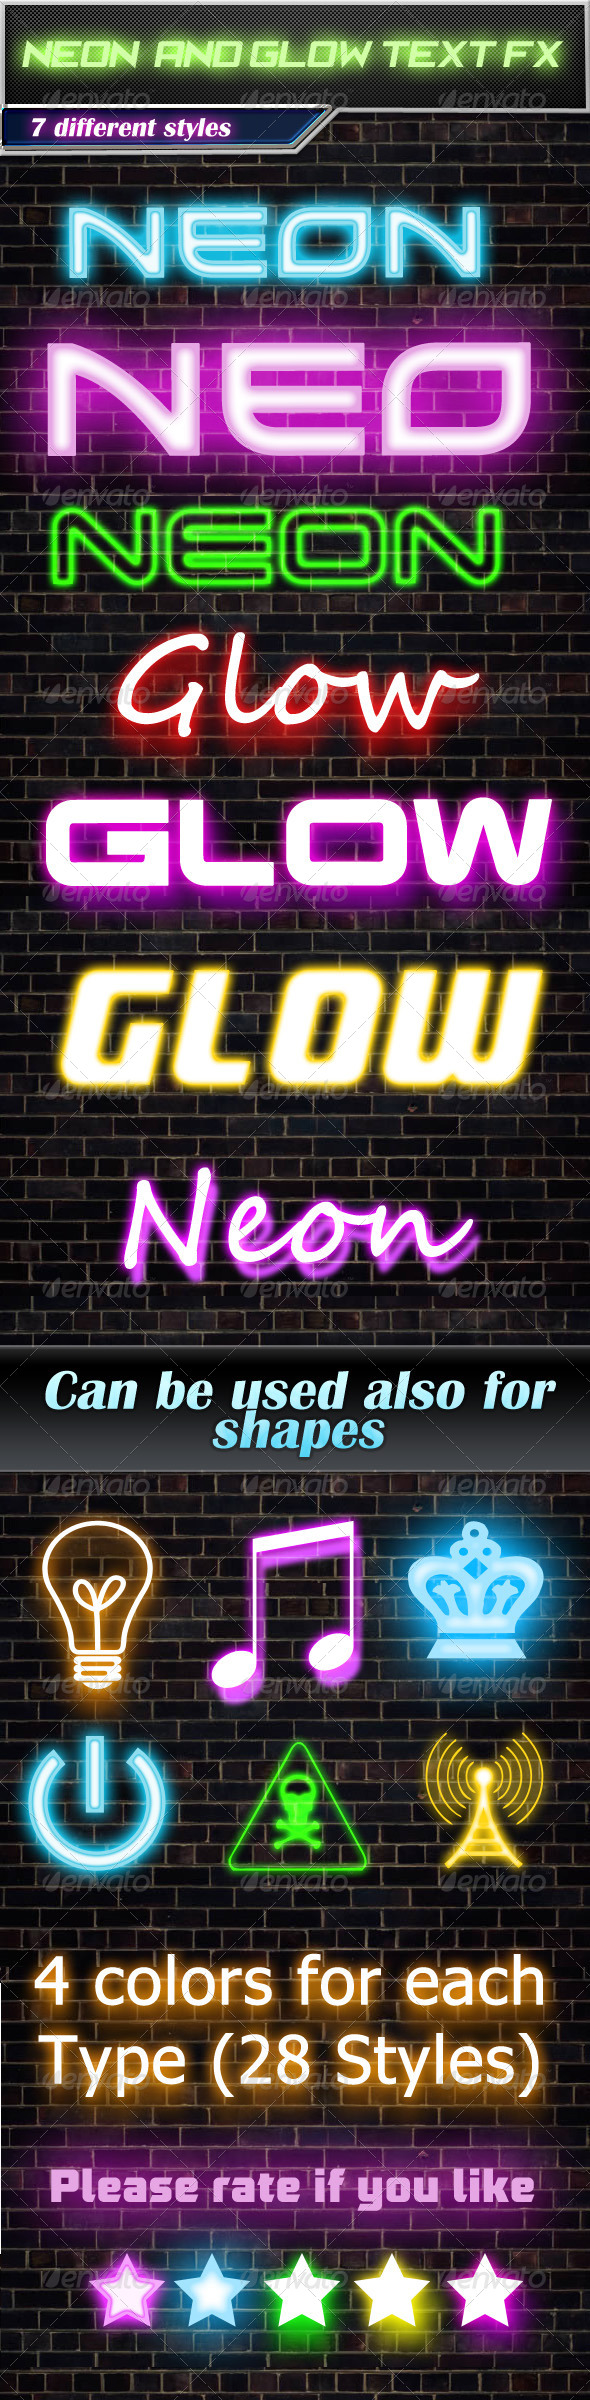 GraphicRiver 28 Neon And Glow Text Effects 4853488